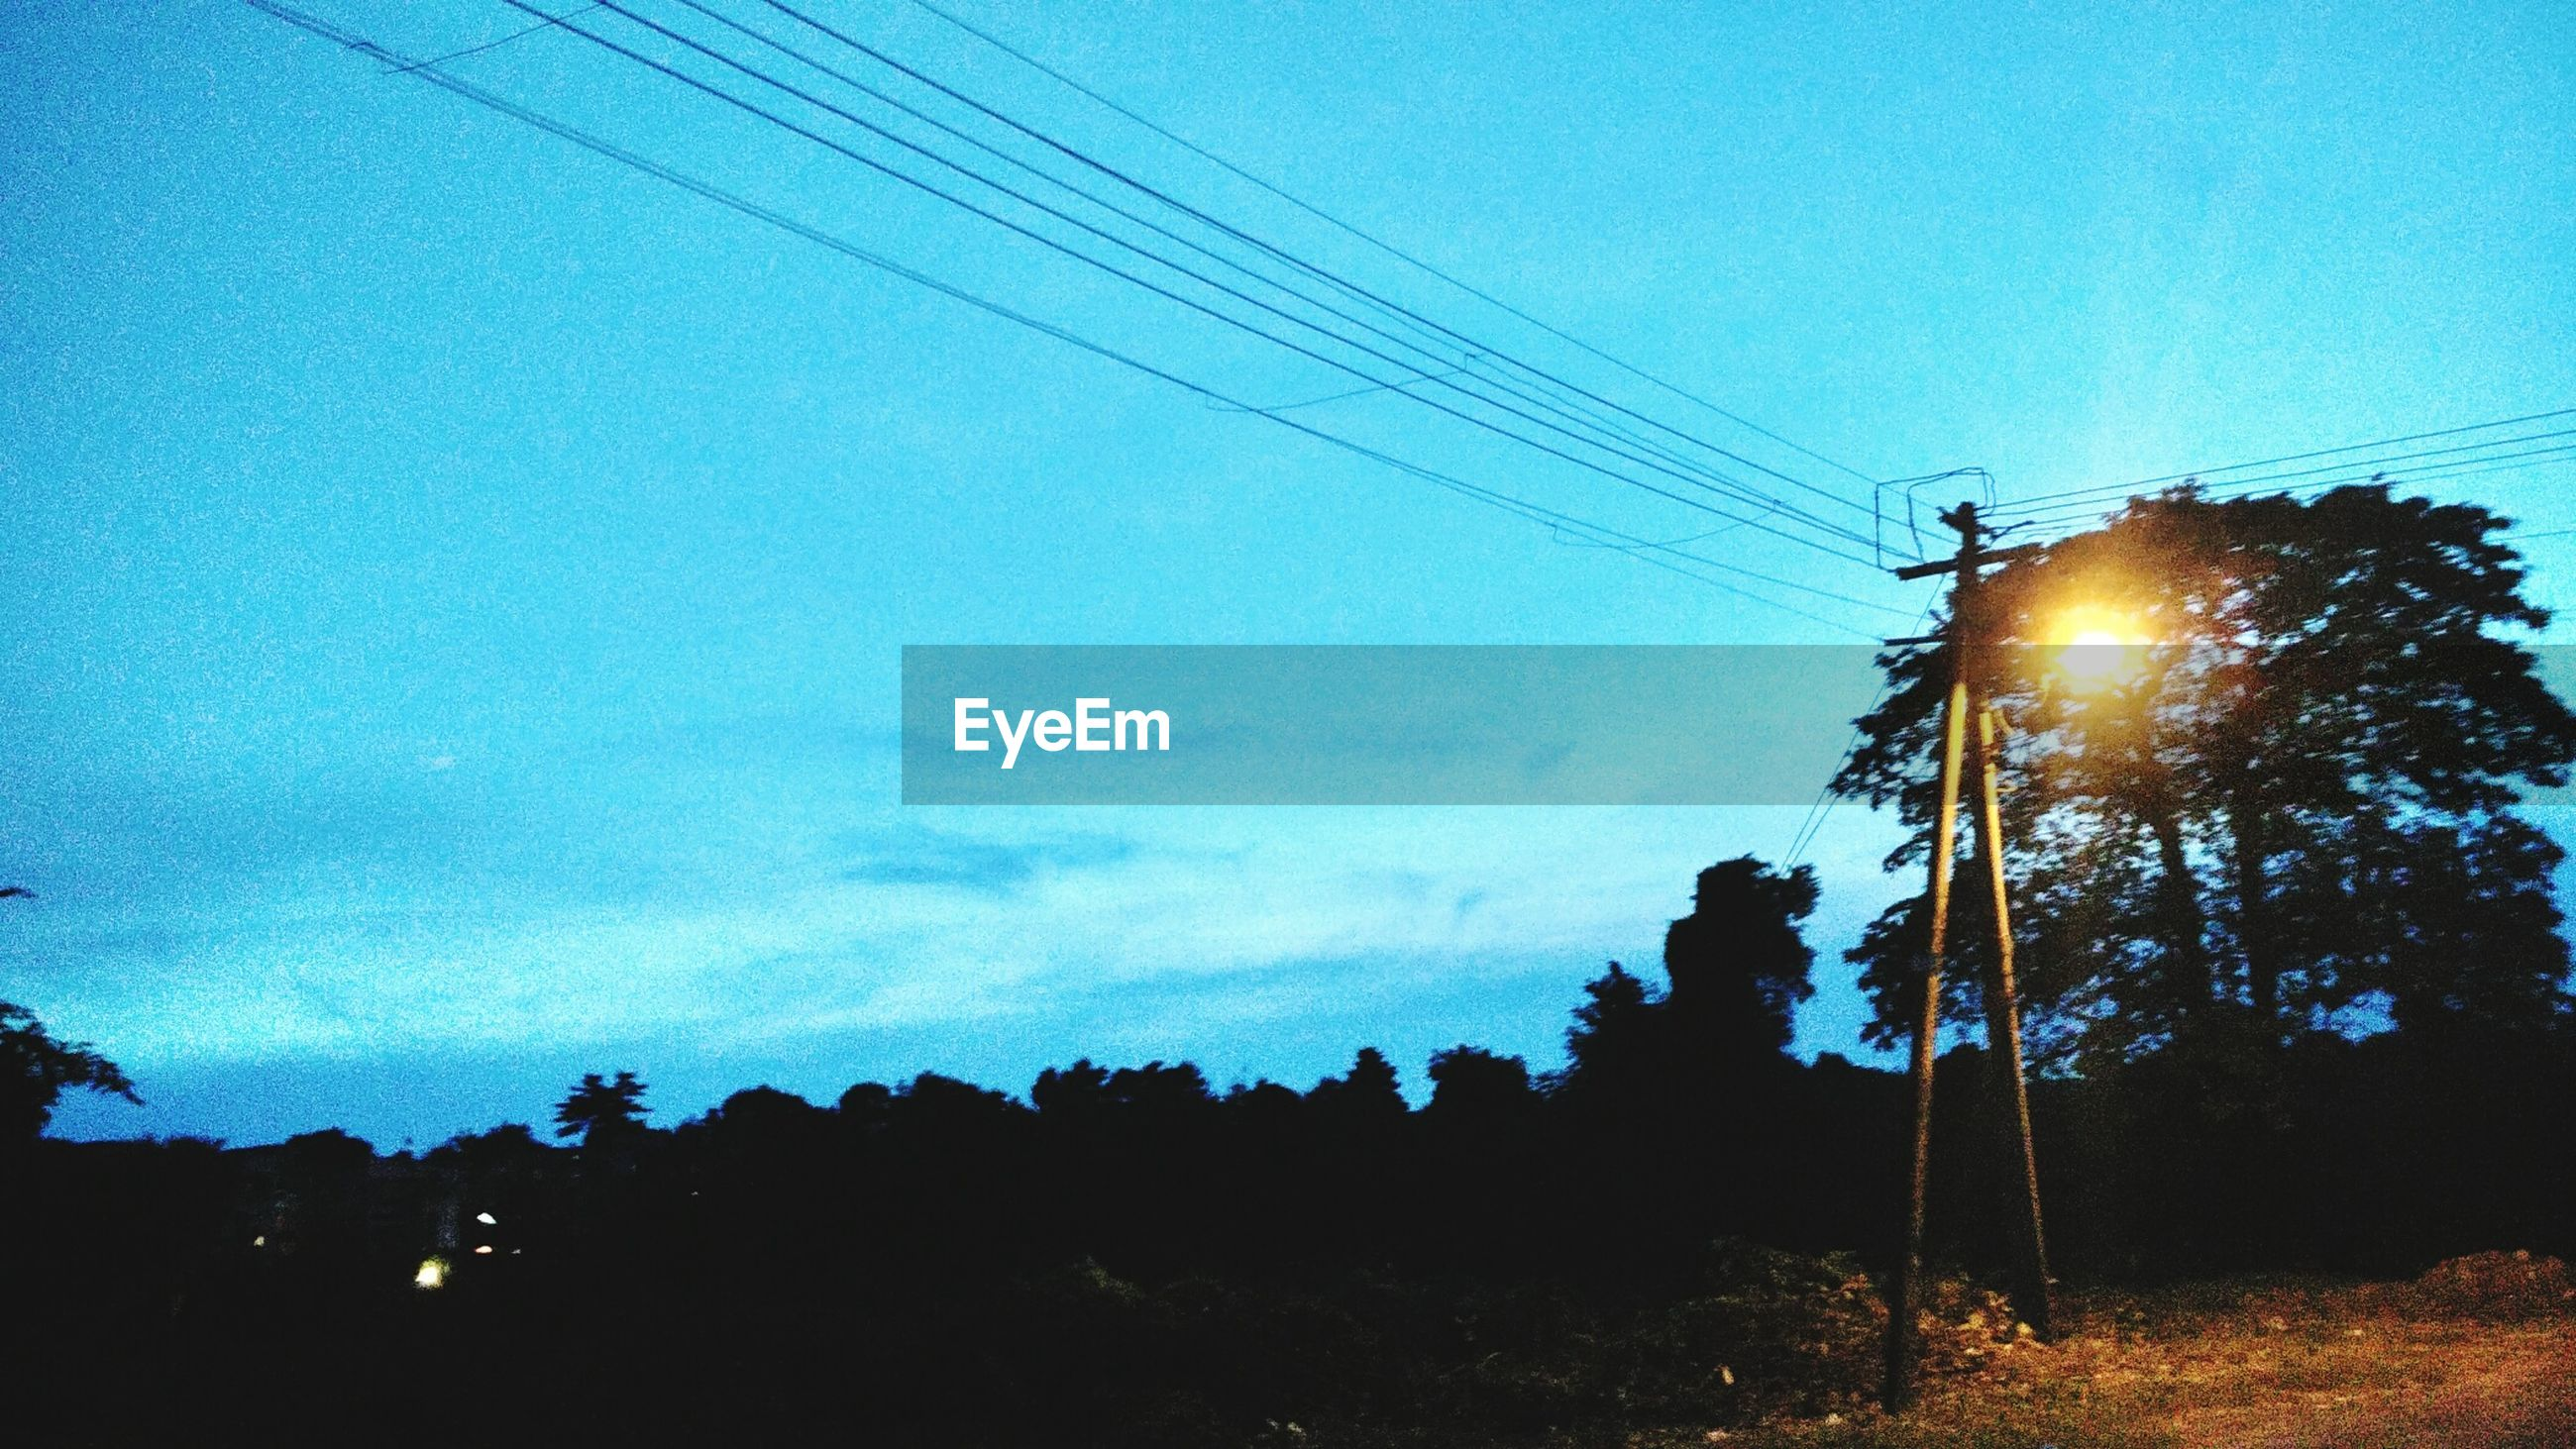 power line, electricity pylon, silhouette, electricity, low angle view, cable, power supply, sky, tree, street light, technology, blue, fuel and power generation, sun, lighting equipment, power cable, clear sky, connection, dusk, sunlight